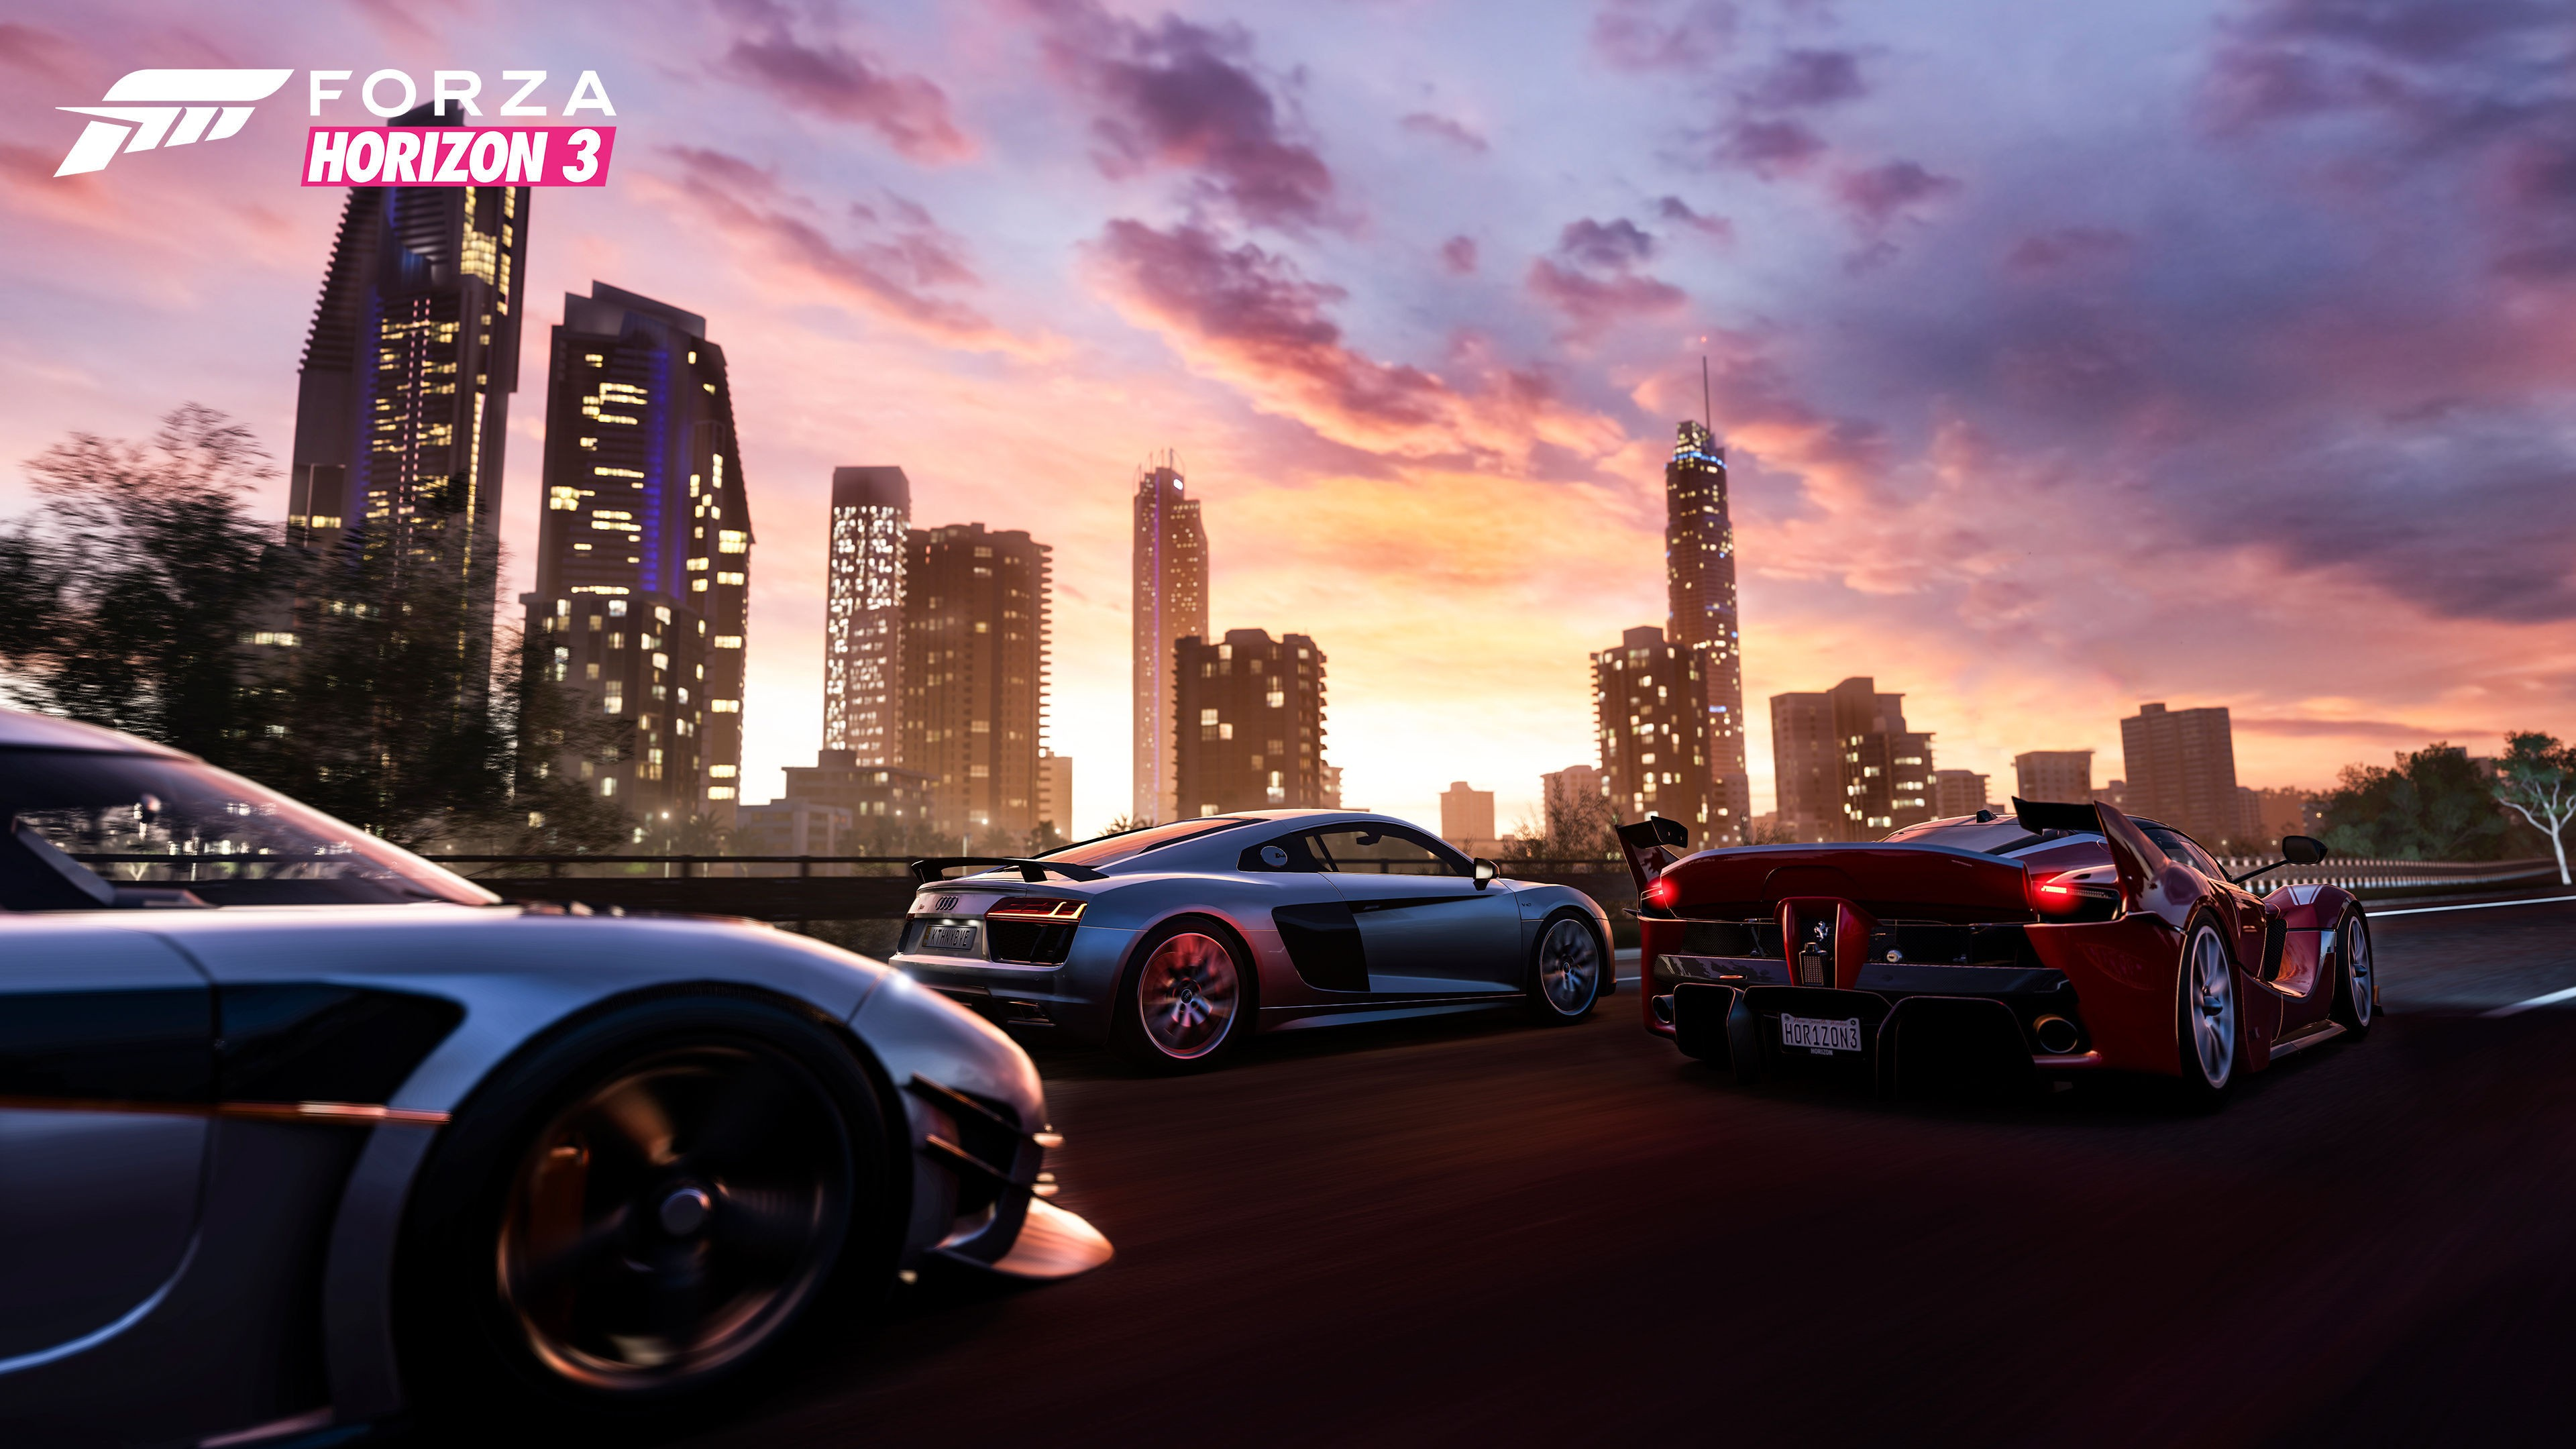 wallpaper forza horizon 3 racing extreme e3 2016 best games playstation 4 xbox one. Black Bedroom Furniture Sets. Home Design Ideas